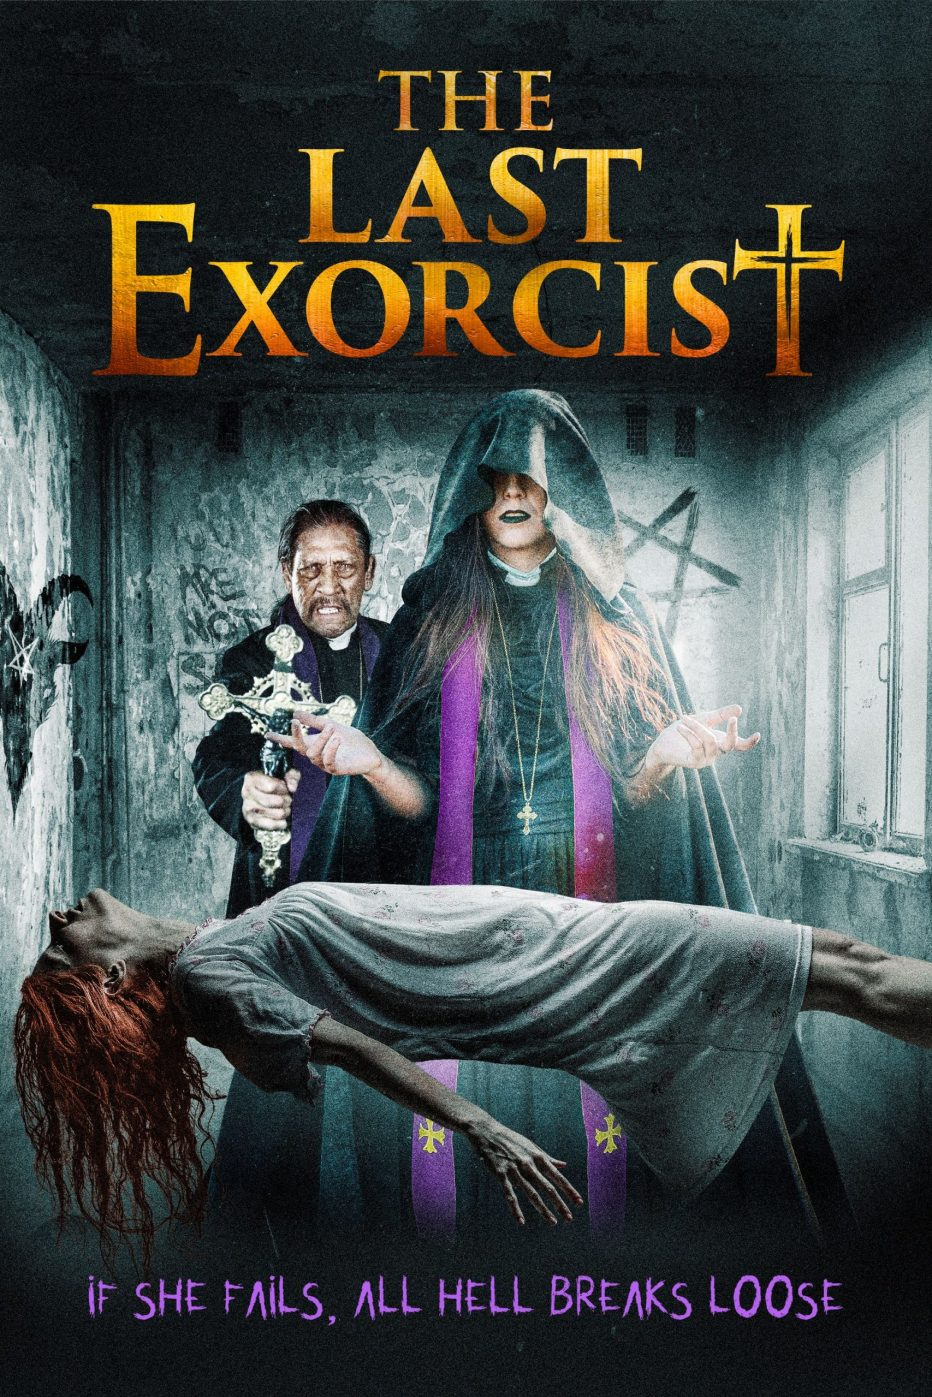 Exorcism Trailer Before Halloween 2020 Official Trailer** Danny Trejo is THE LAST EXORCIST!   My Bloody